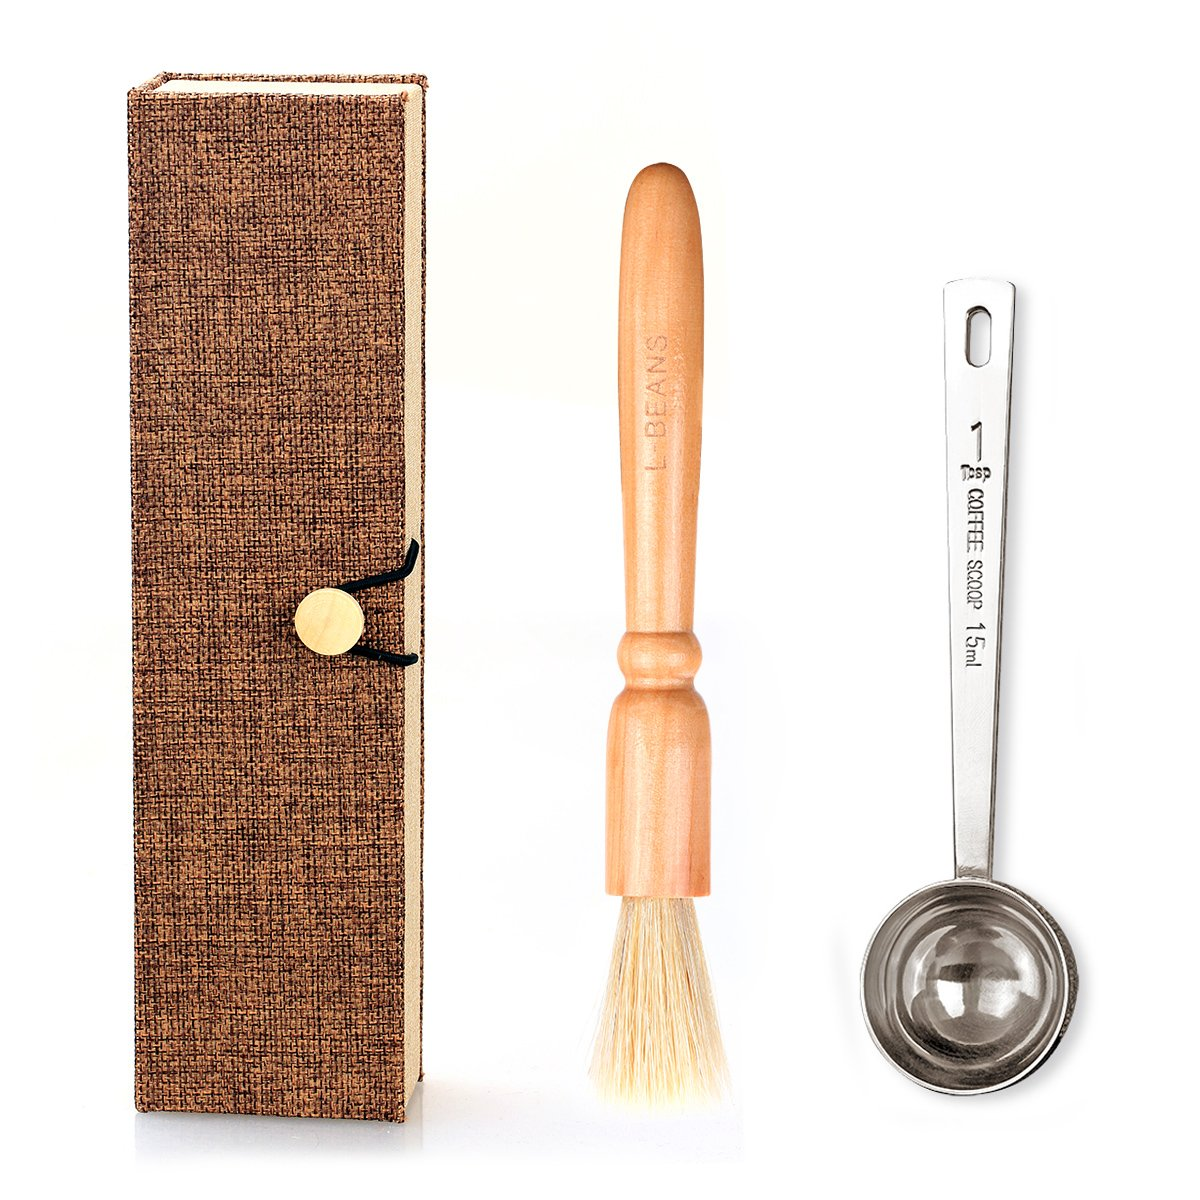 Coffee Grinder Brush and Measuring Scoop with Gift Box, Natural Wood & Bristles & 304 Stainless Steel Spoon Espresso Cleaning Brush Accessories by Remtise (Image #1)